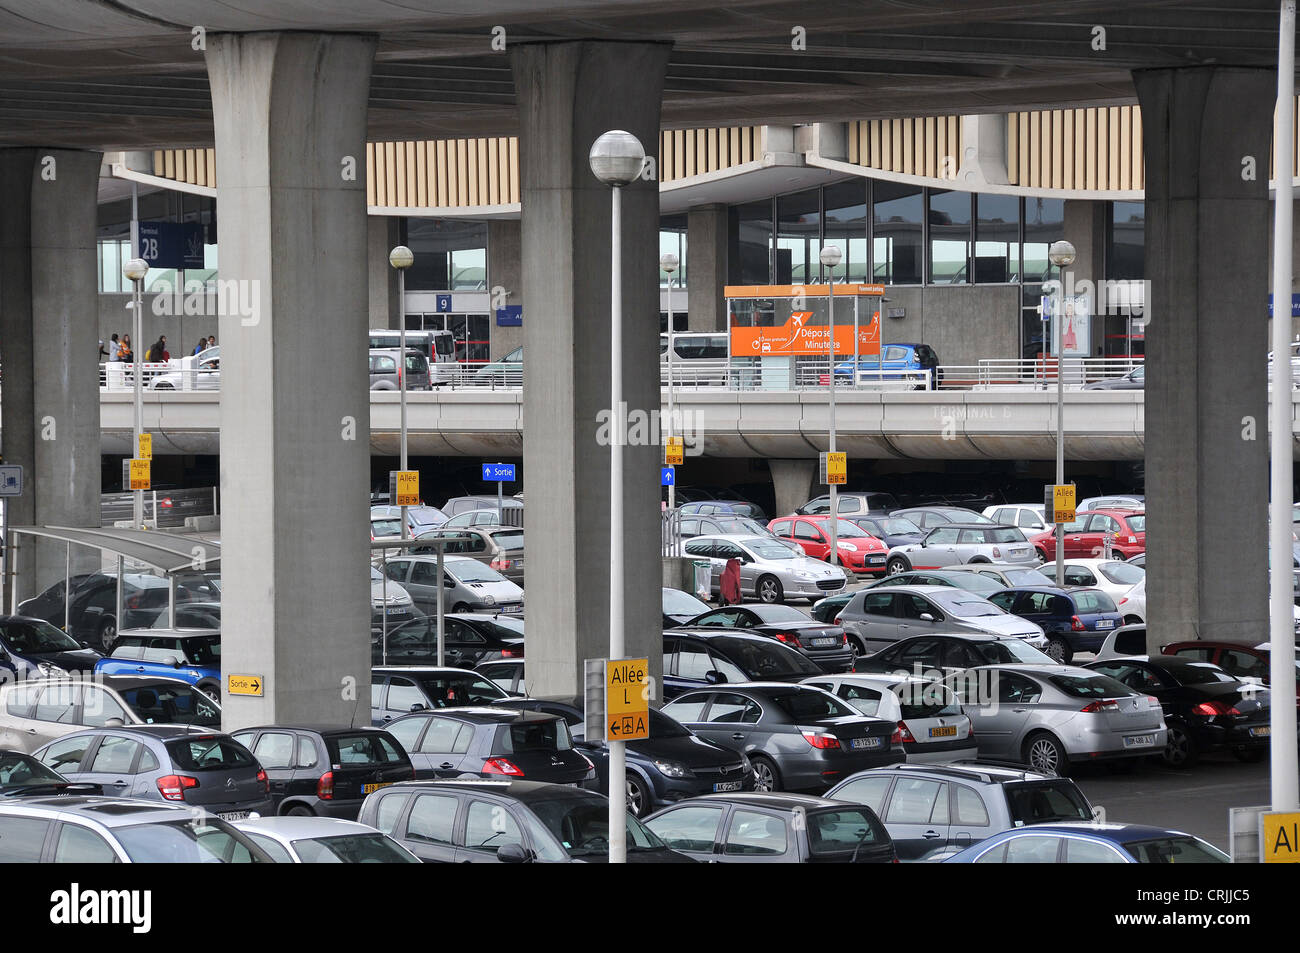 Parking Roissy Cdg Cars Parking Roissy Charles De Gaulle Airport Terminal 2 Paris